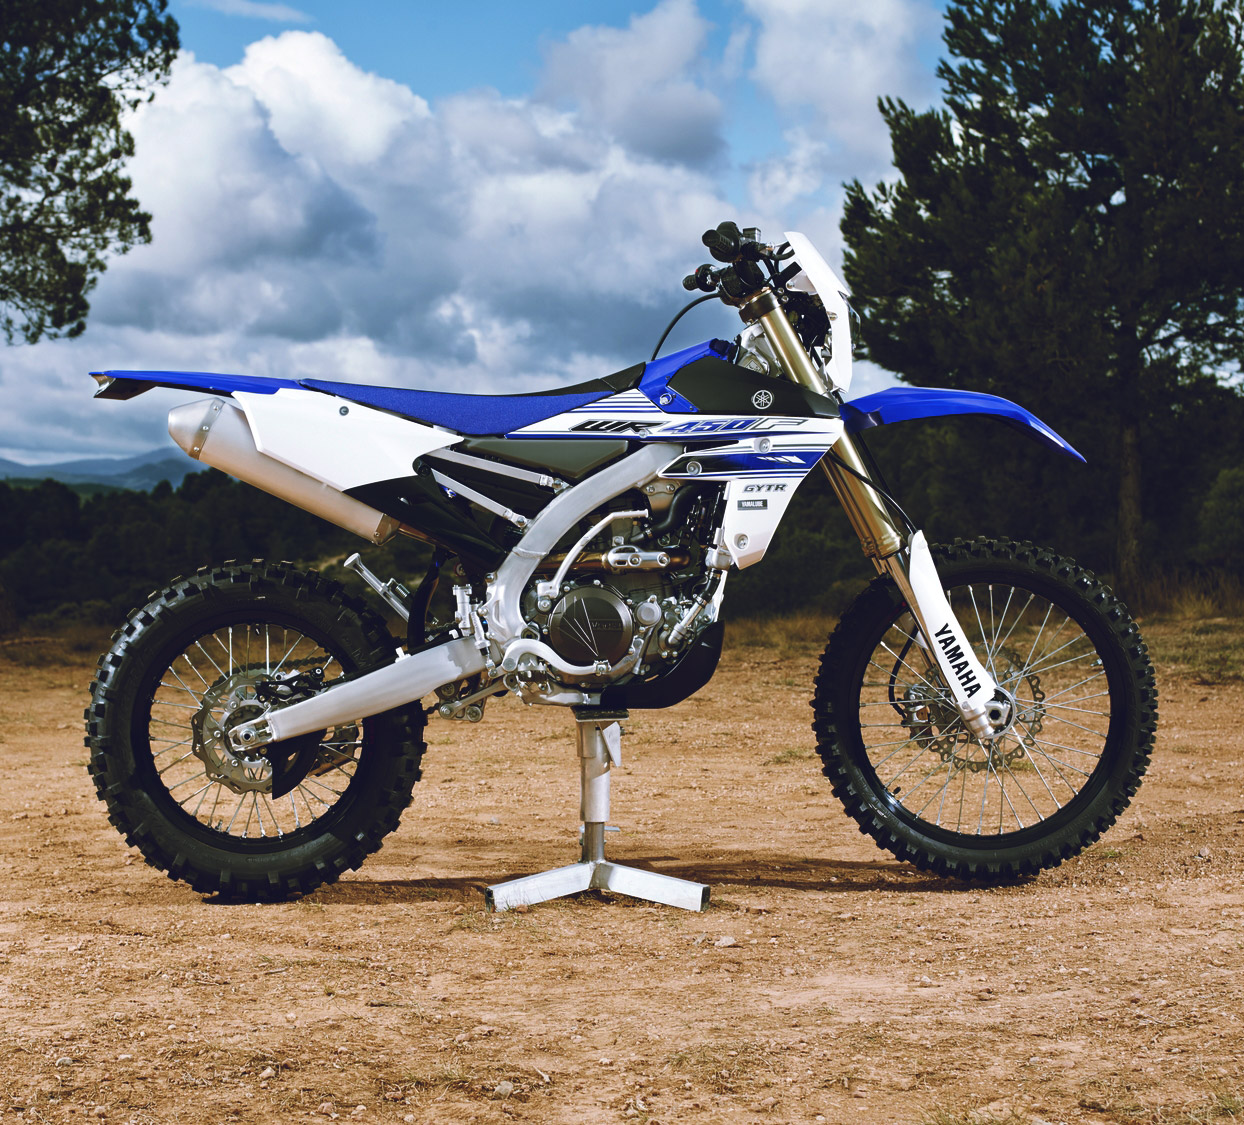 2016 yamaha wr450f australian launch stroud nsw. Black Bedroom Furniture Sets. Home Design Ideas